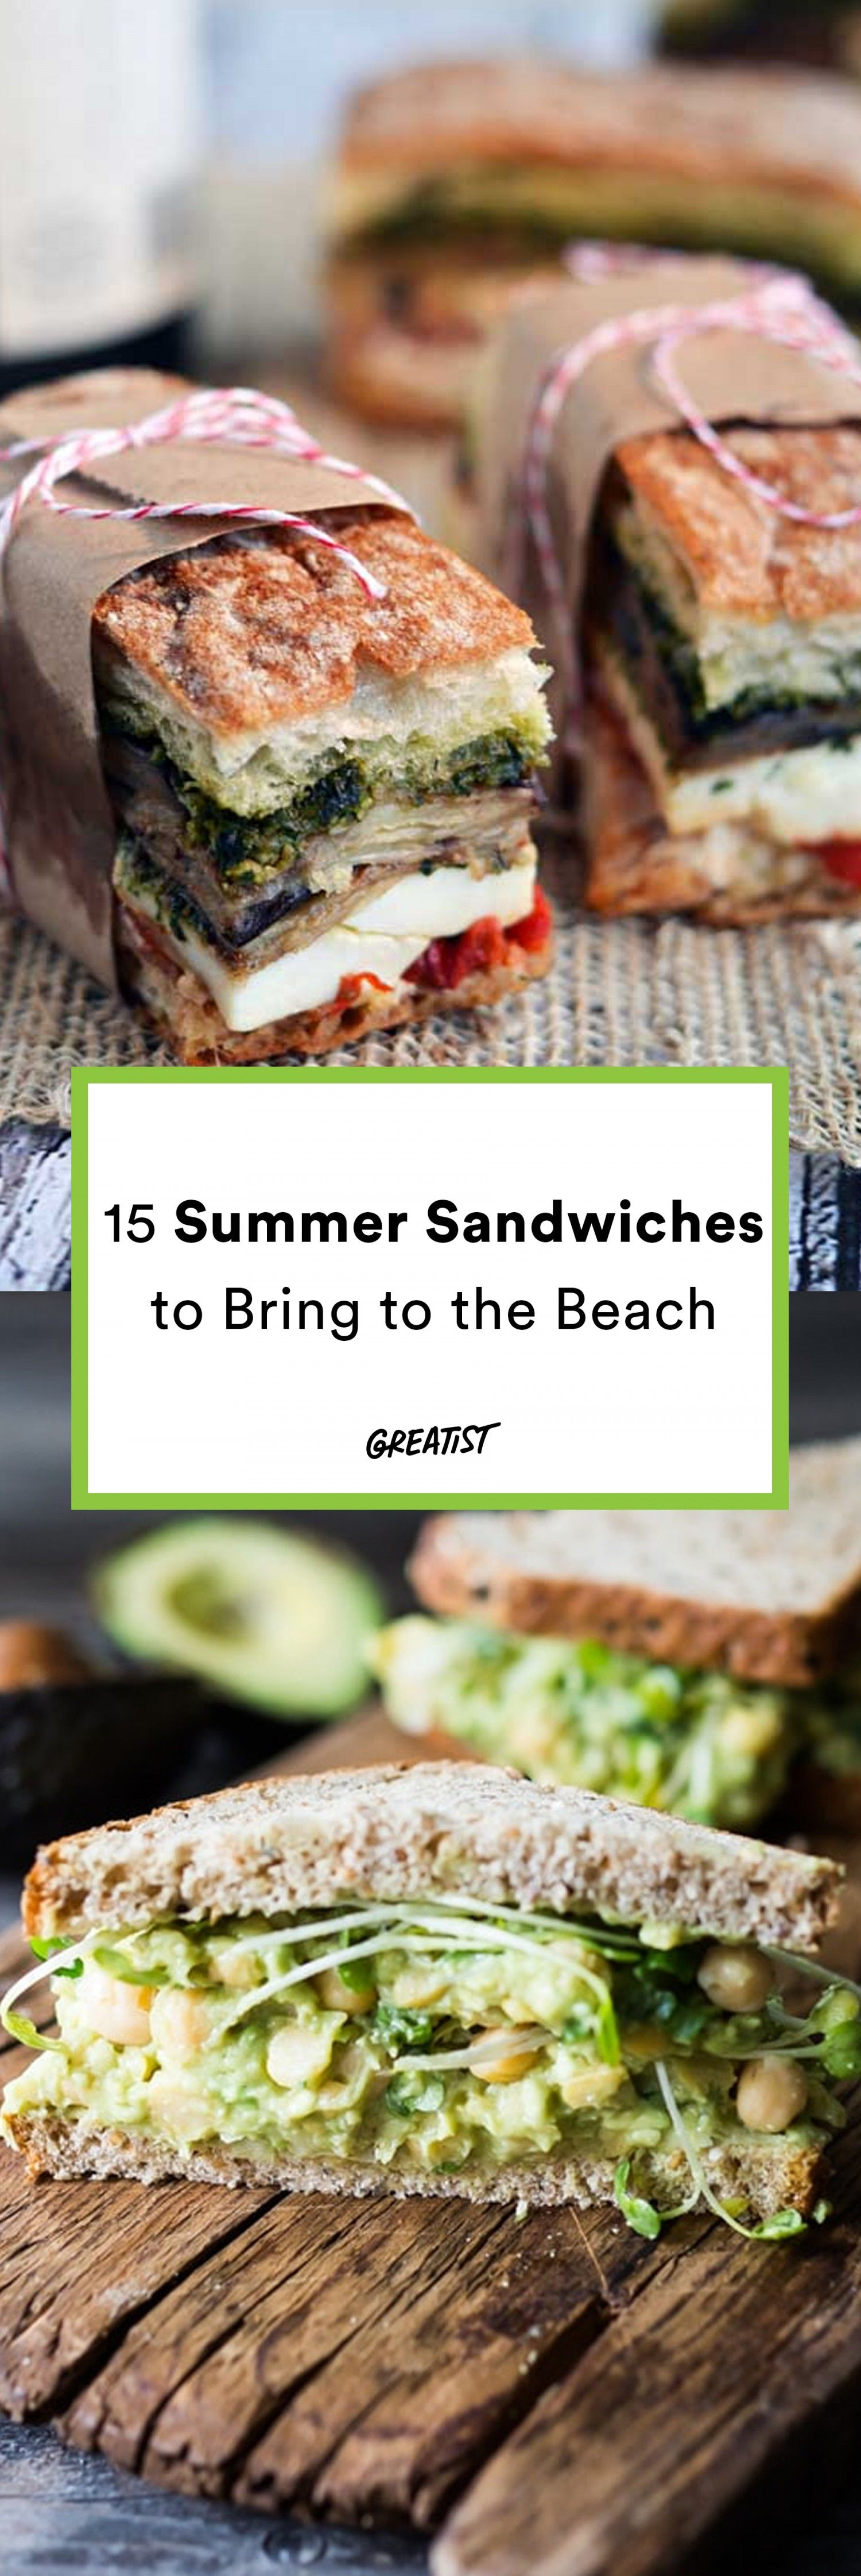 Photo of 15 Summer Sandwiches That Won't Get Soggy at the Beach